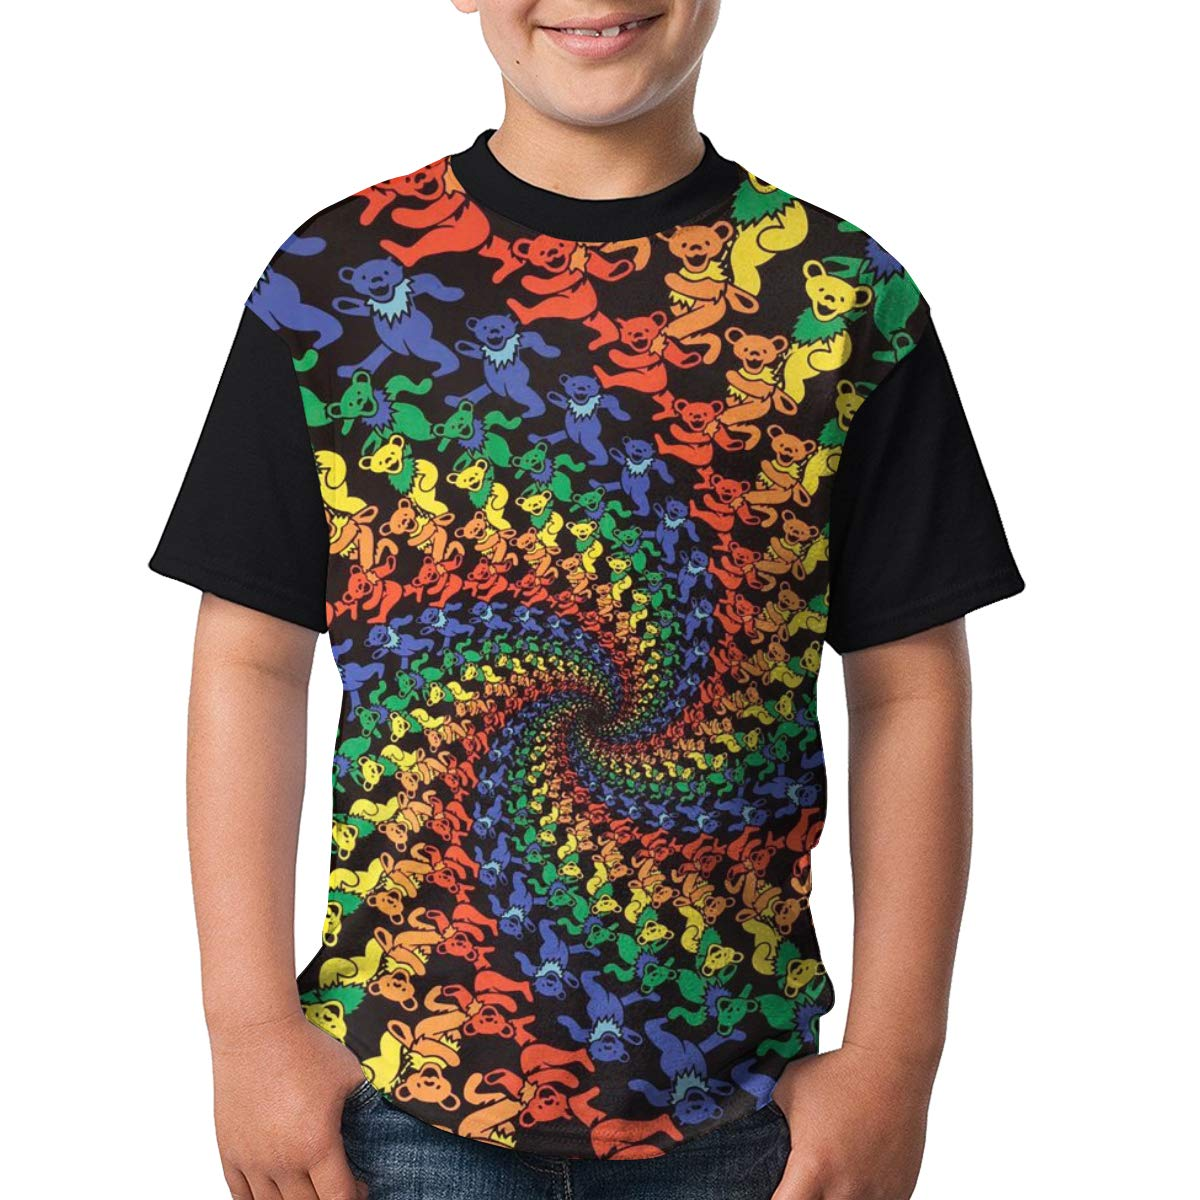 HH88XIAO66A Youth Ancing Bears 3D Print T-Shirts for Boys Girls Short Sleeve Tops Tees